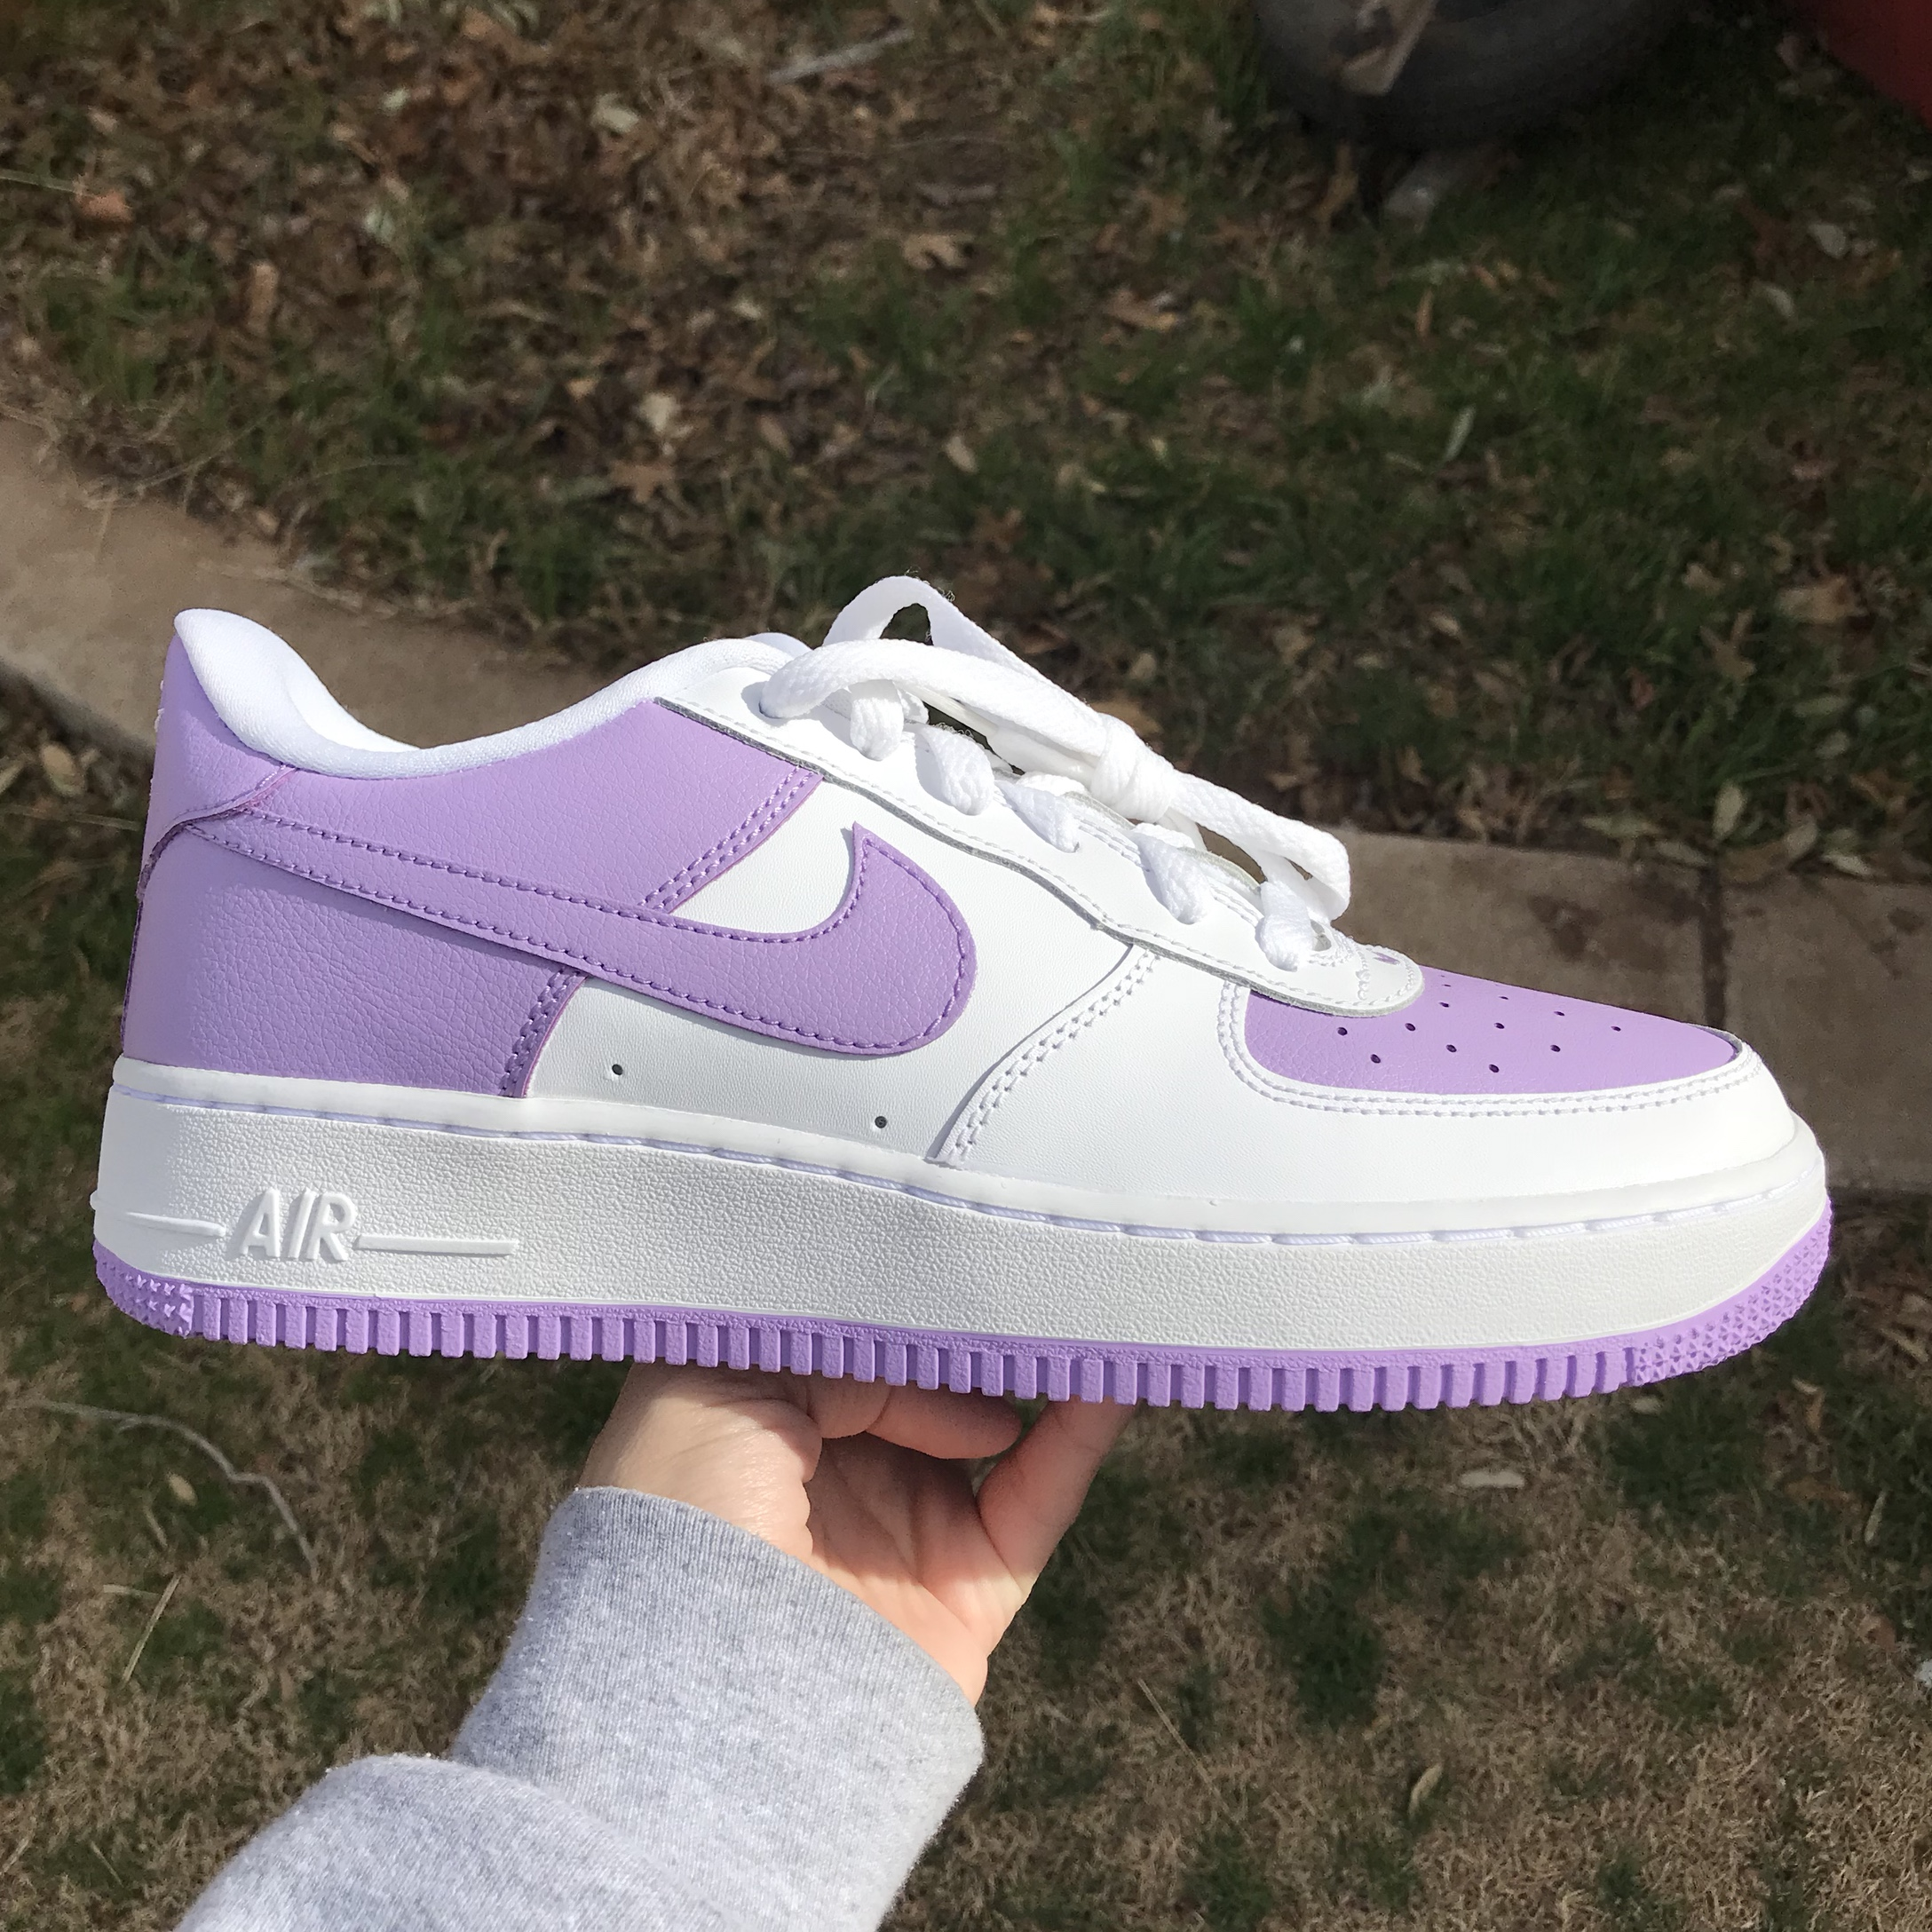 Lavender Nike Air Force 1! These are a